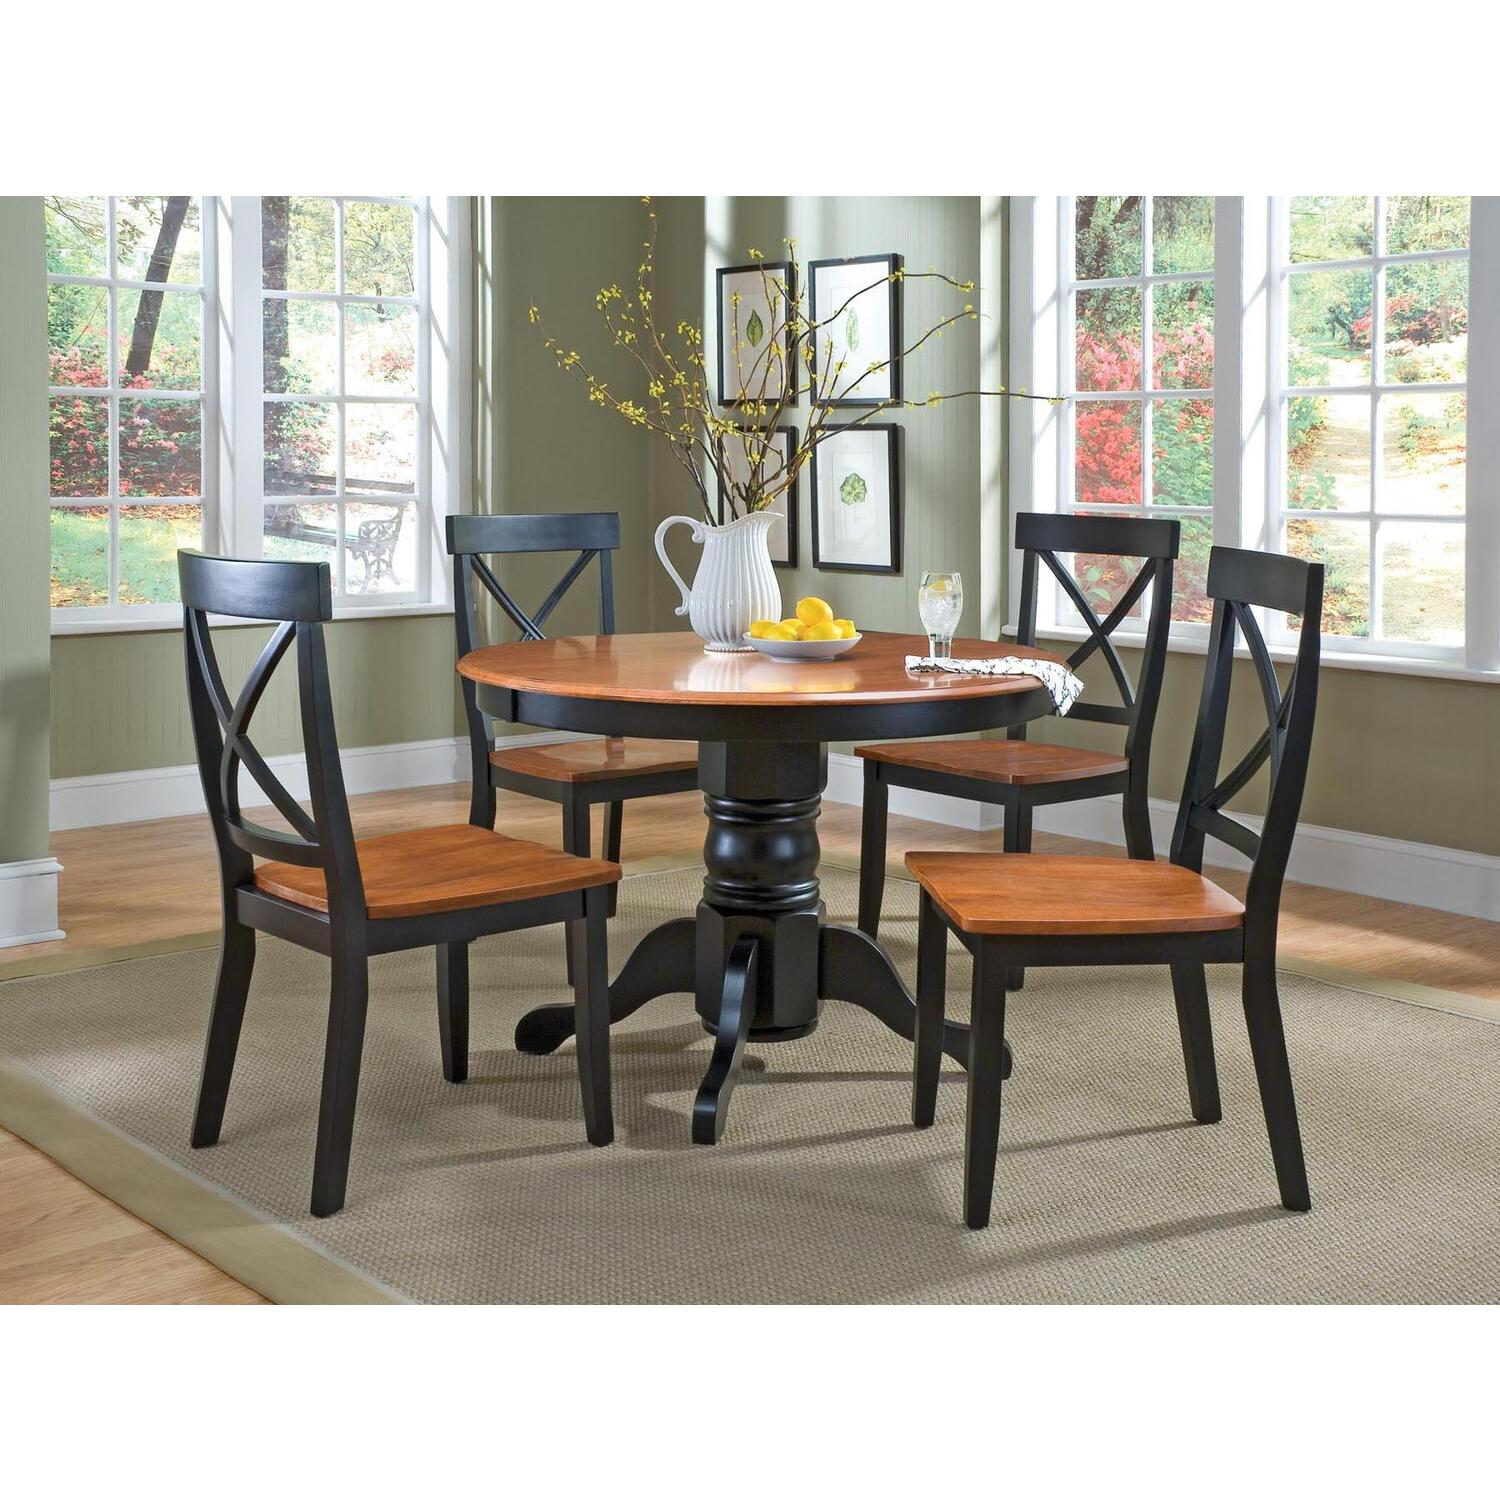 home styles 5168 318 5 piece round pedestal dining set